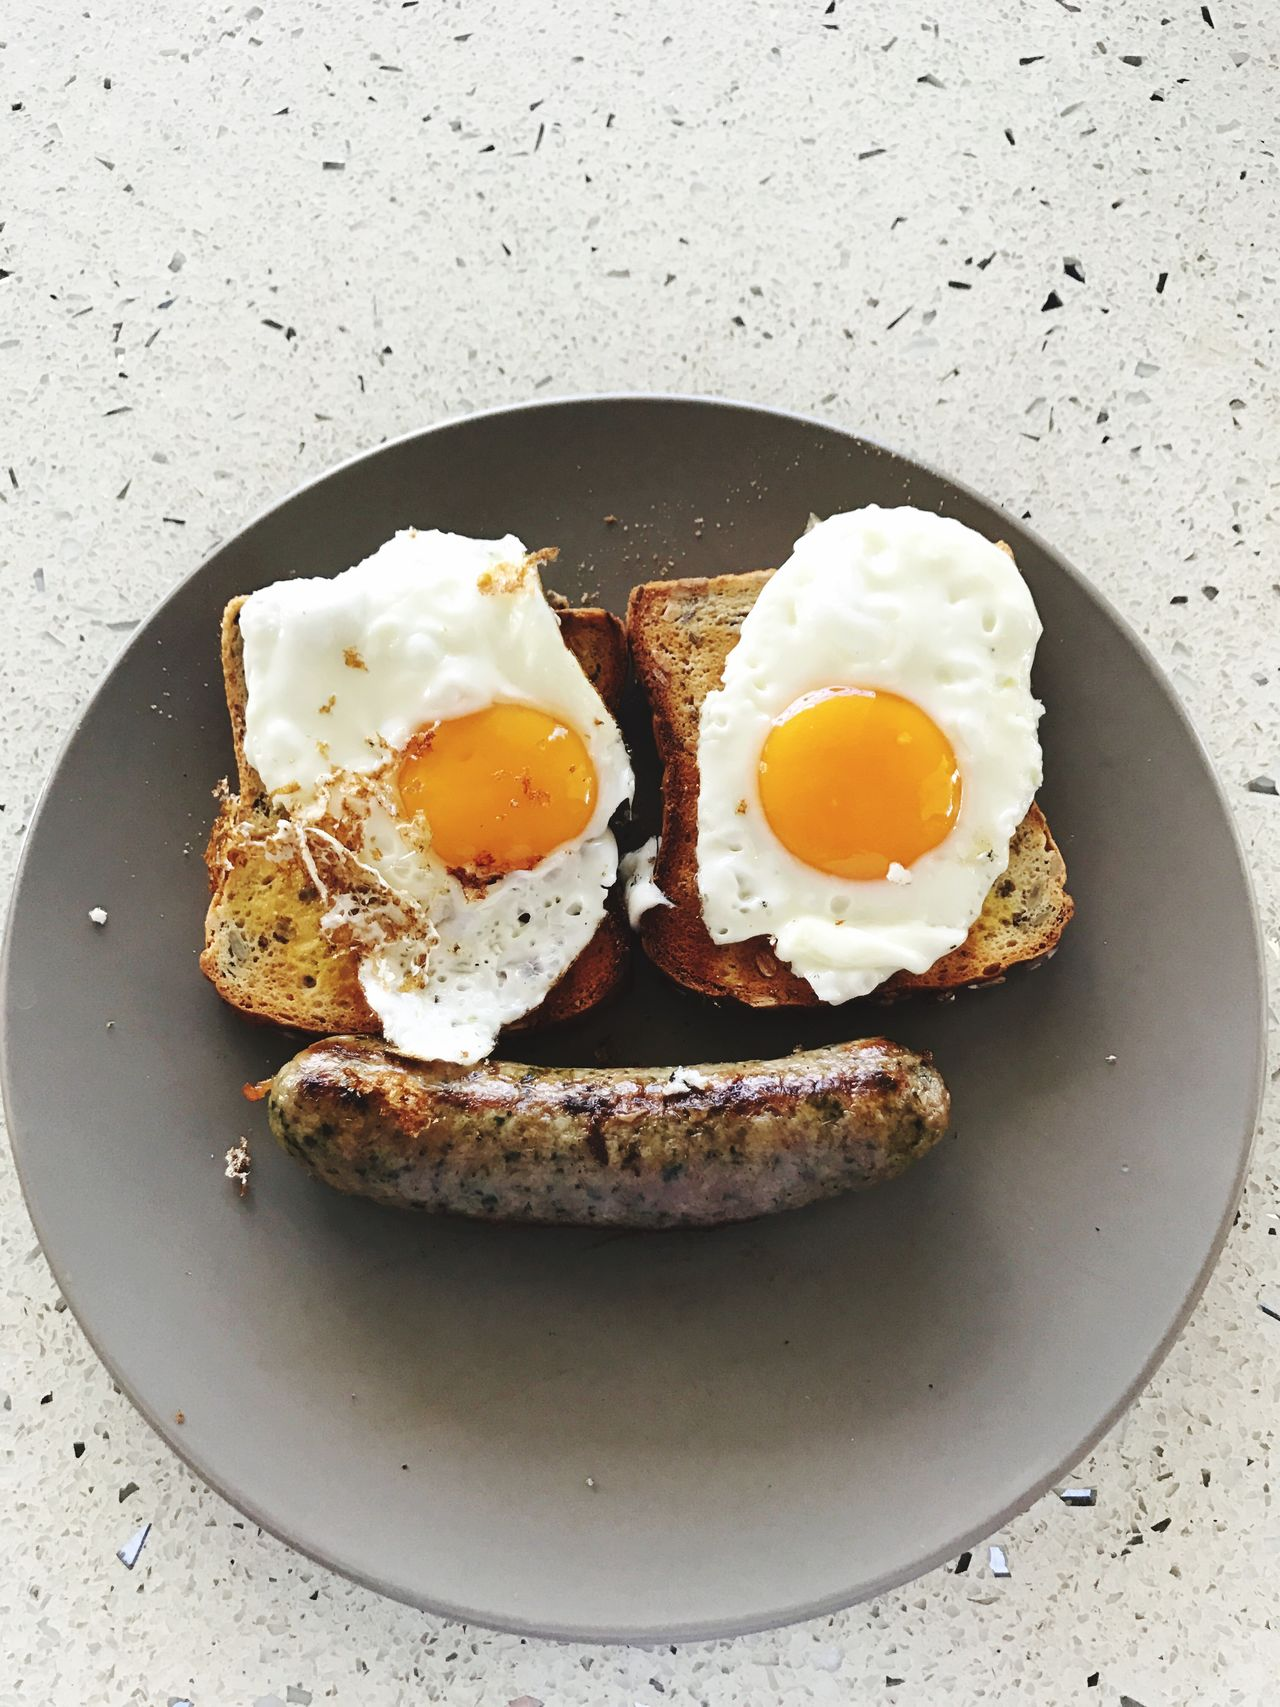 Smile :) breakfast sausage and eggs face food Egg Breakfast Plate Fried Egg Egg Yolk Ready-to-eat Food Food And Drink Toasted Bread Freshness Sunny Side Up Indoors  Healthy Eating English Breakfast No People Egg White Close-up Day Poached